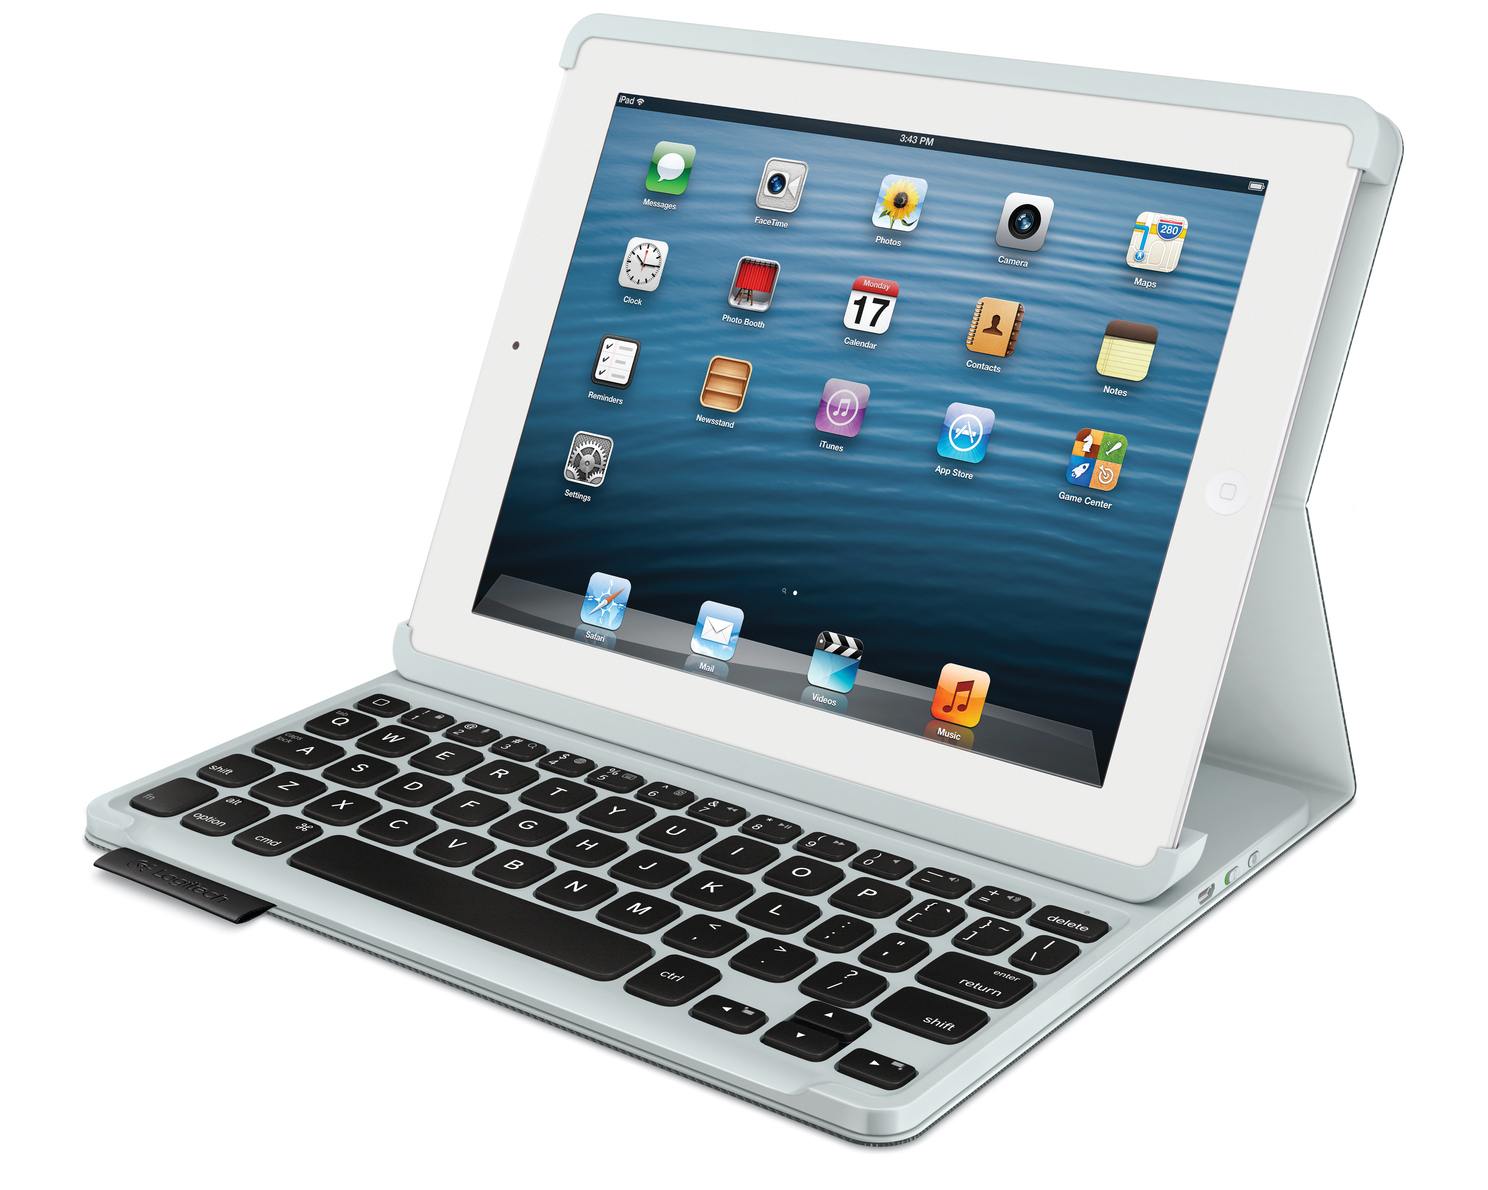 Logitech Keyboard Folio is the perfect companion for iPad and iPad Mini